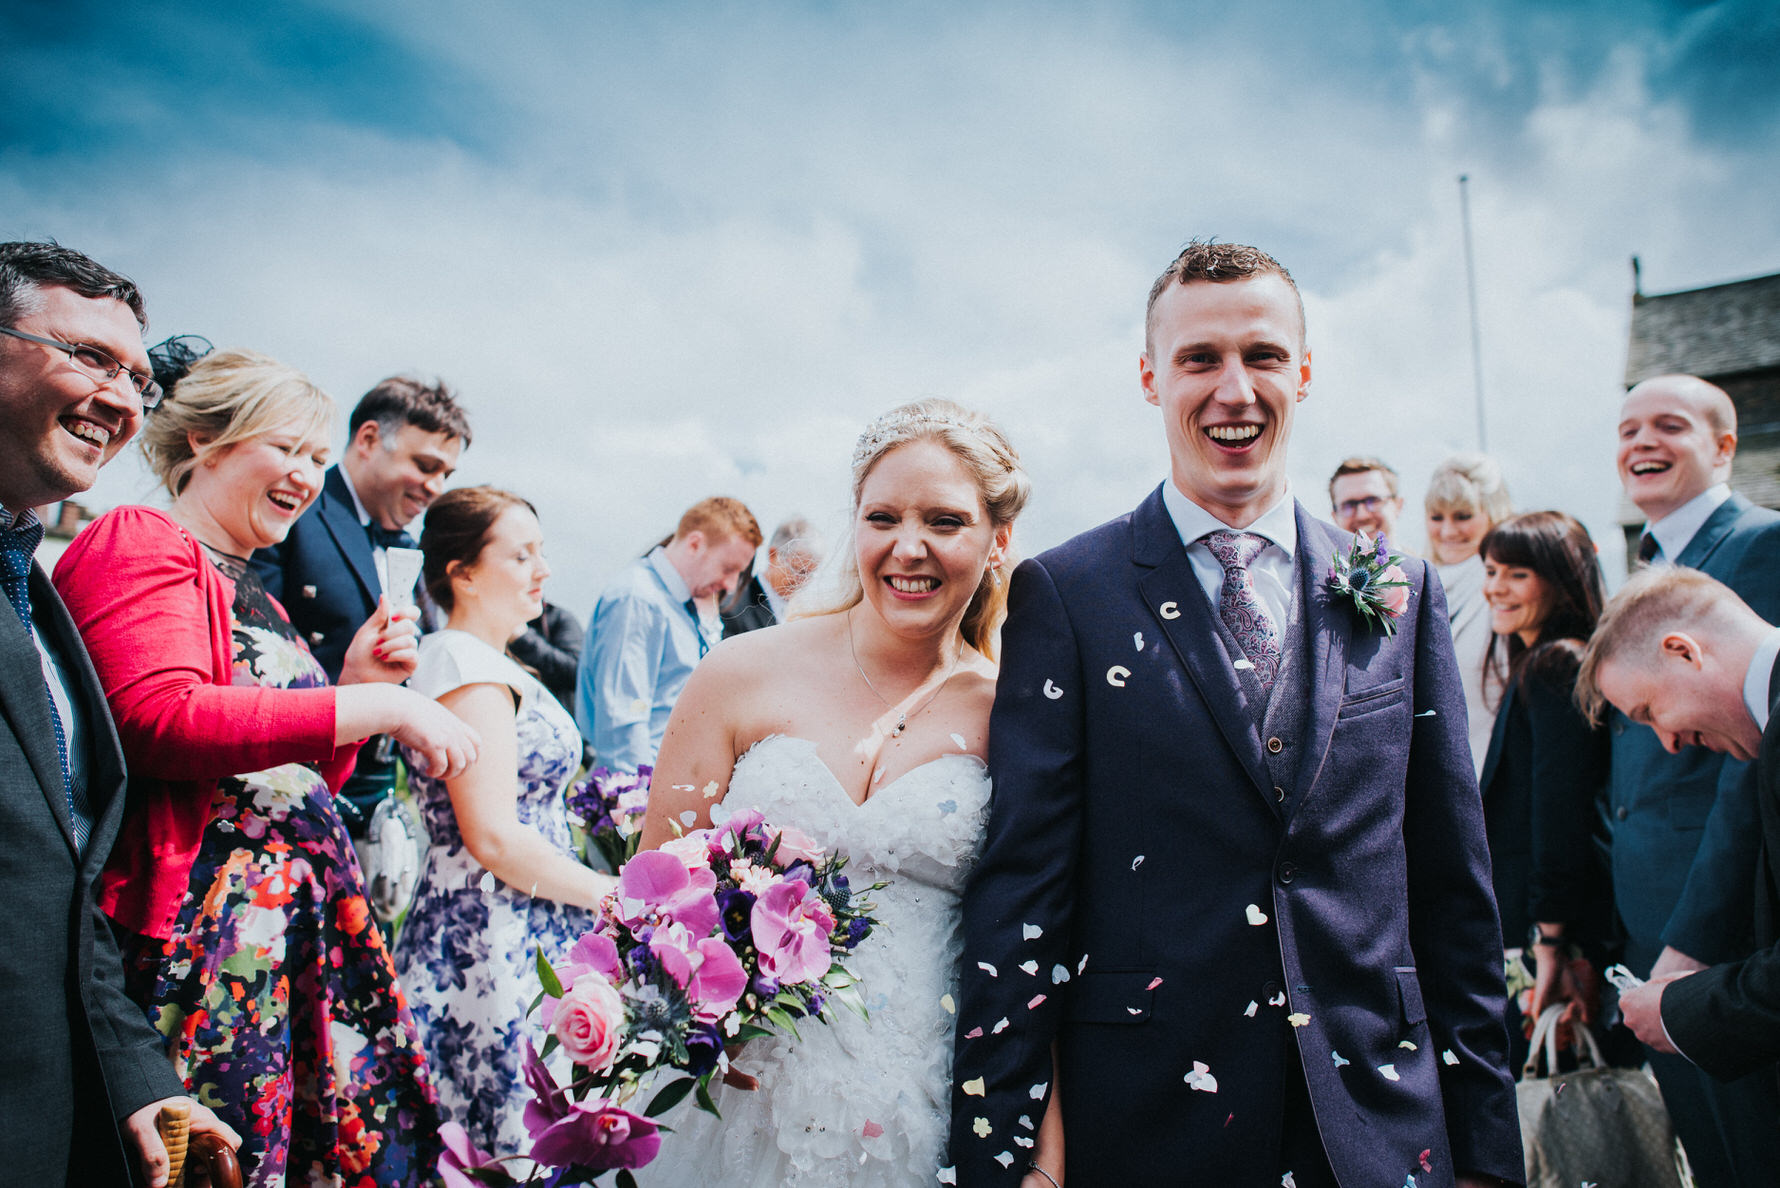 Natural-documentary-wedding-photography-bride-and-groom-cheshire